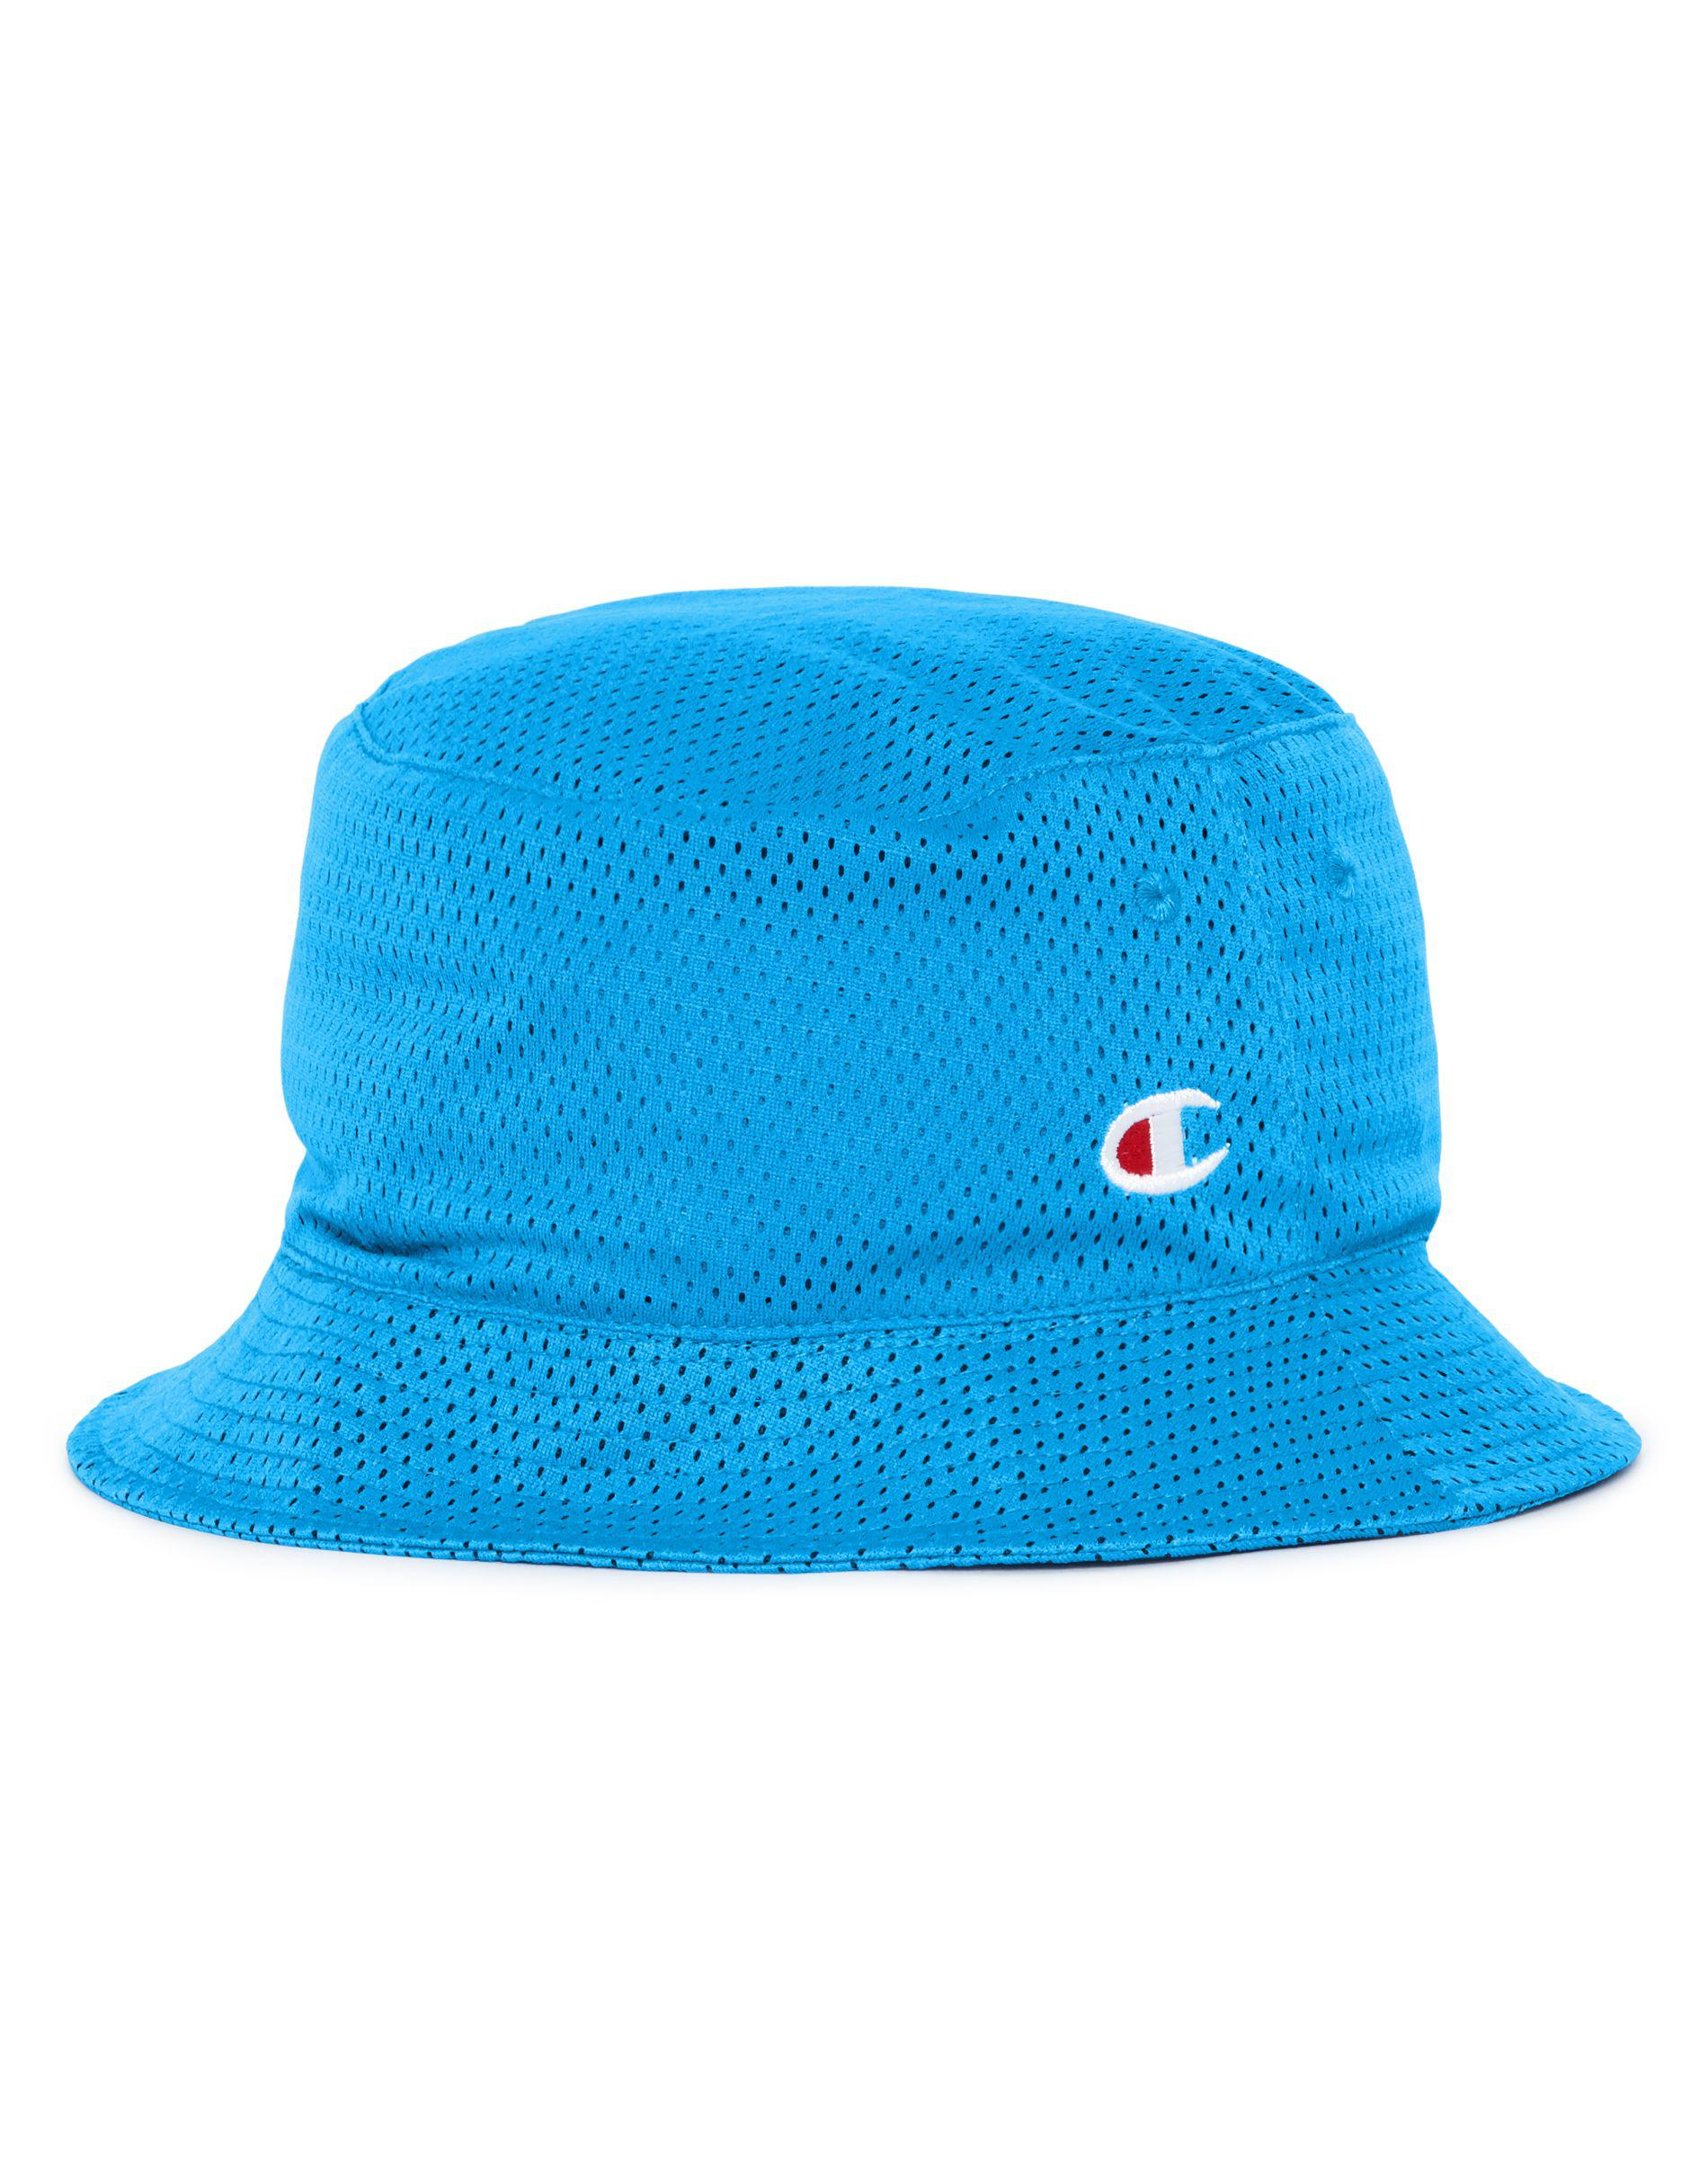 13834a7924b Lyst - Champion Lifetm Reversible Mesh Bucket Hat in Blue for Men